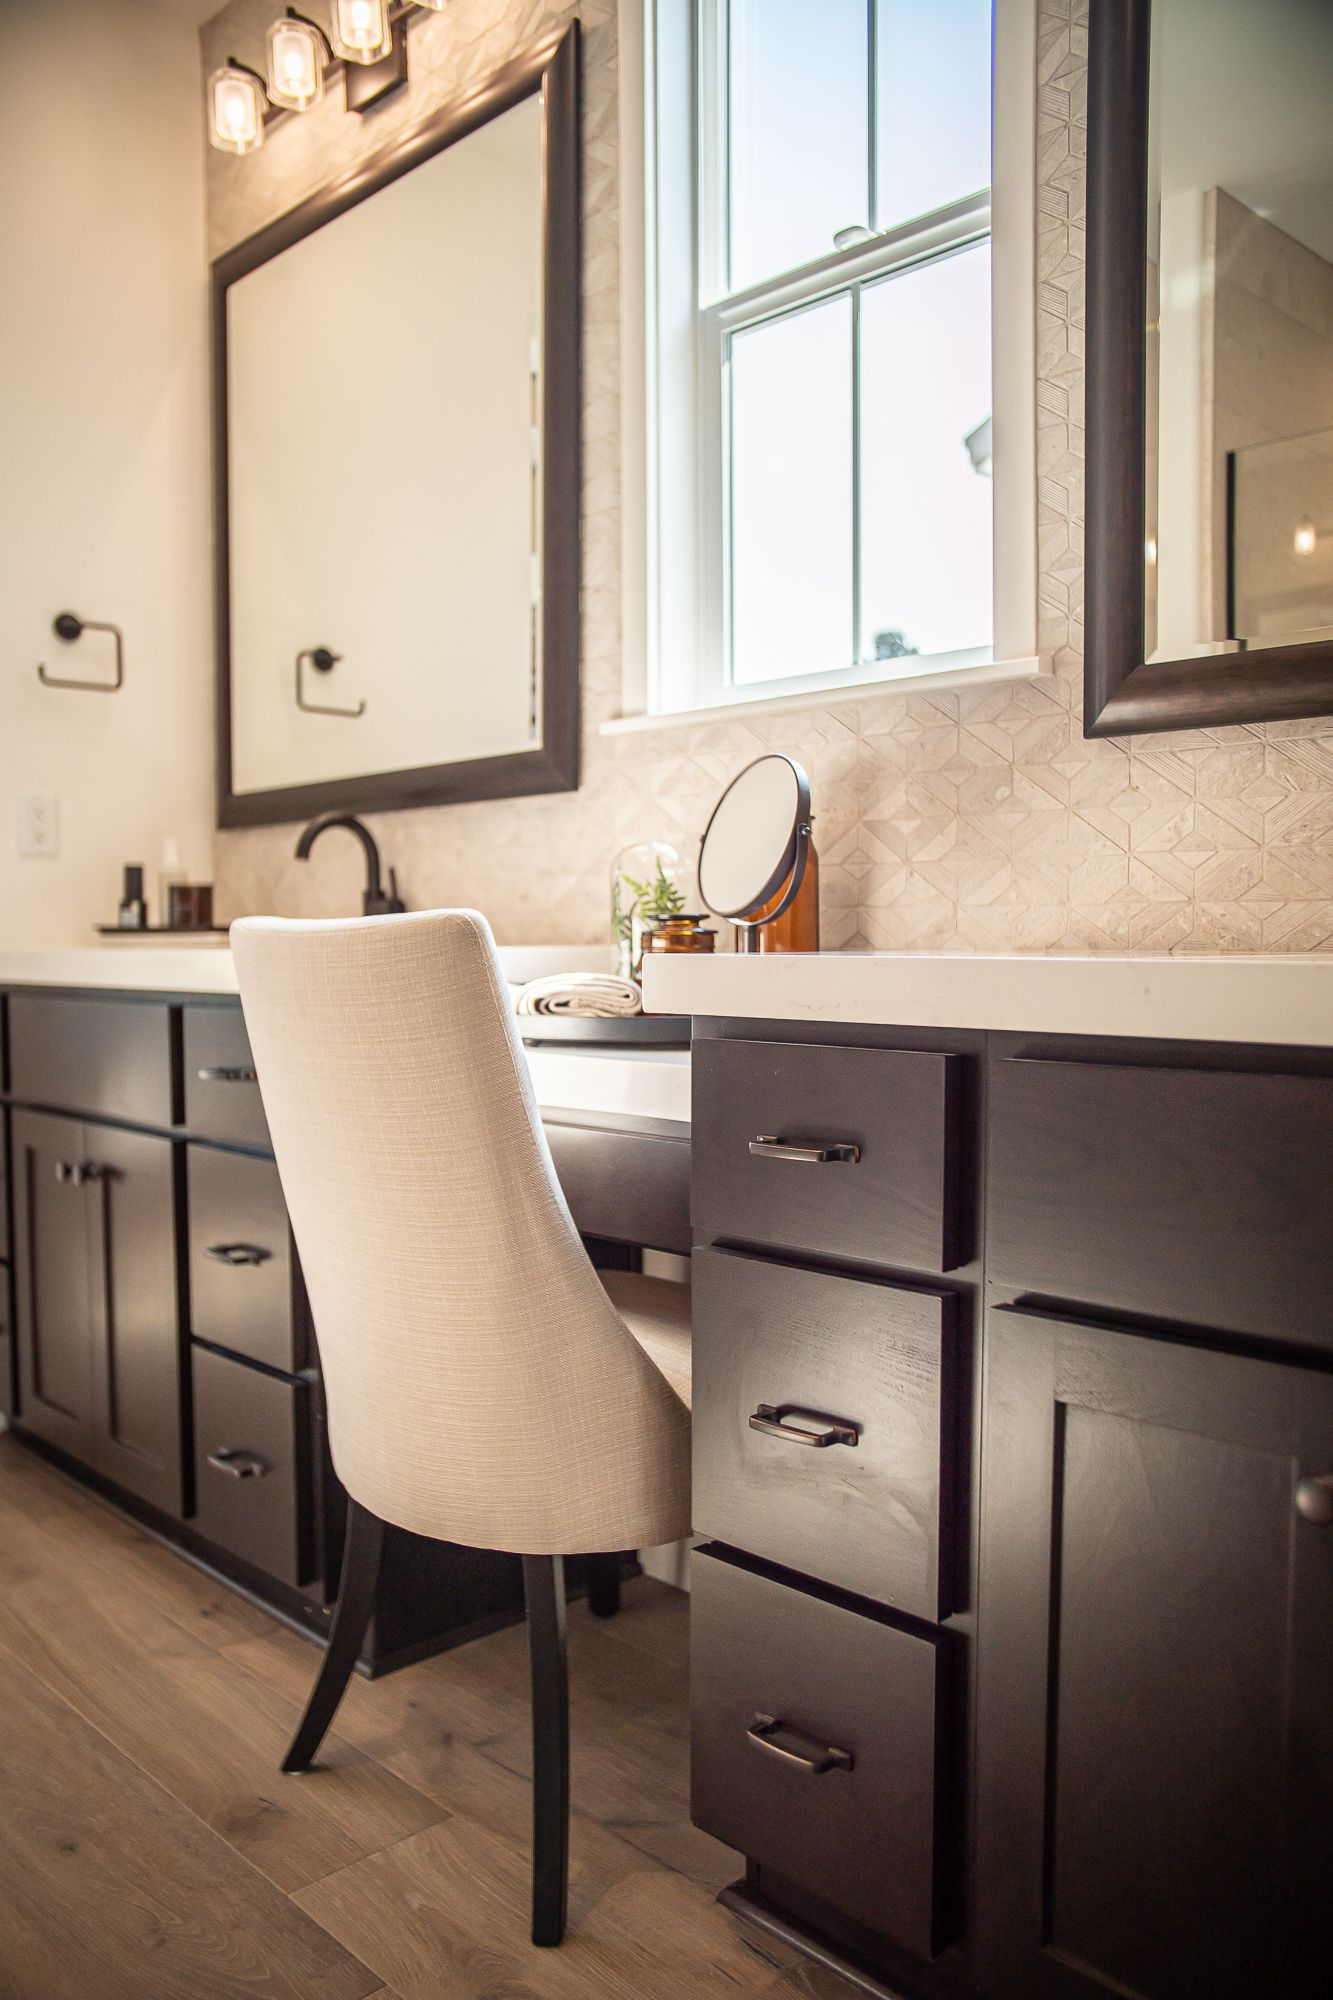 Bathroom featured in the Alley Row Collection Residence 8 By BlackPine Communites in Sacramento, CA